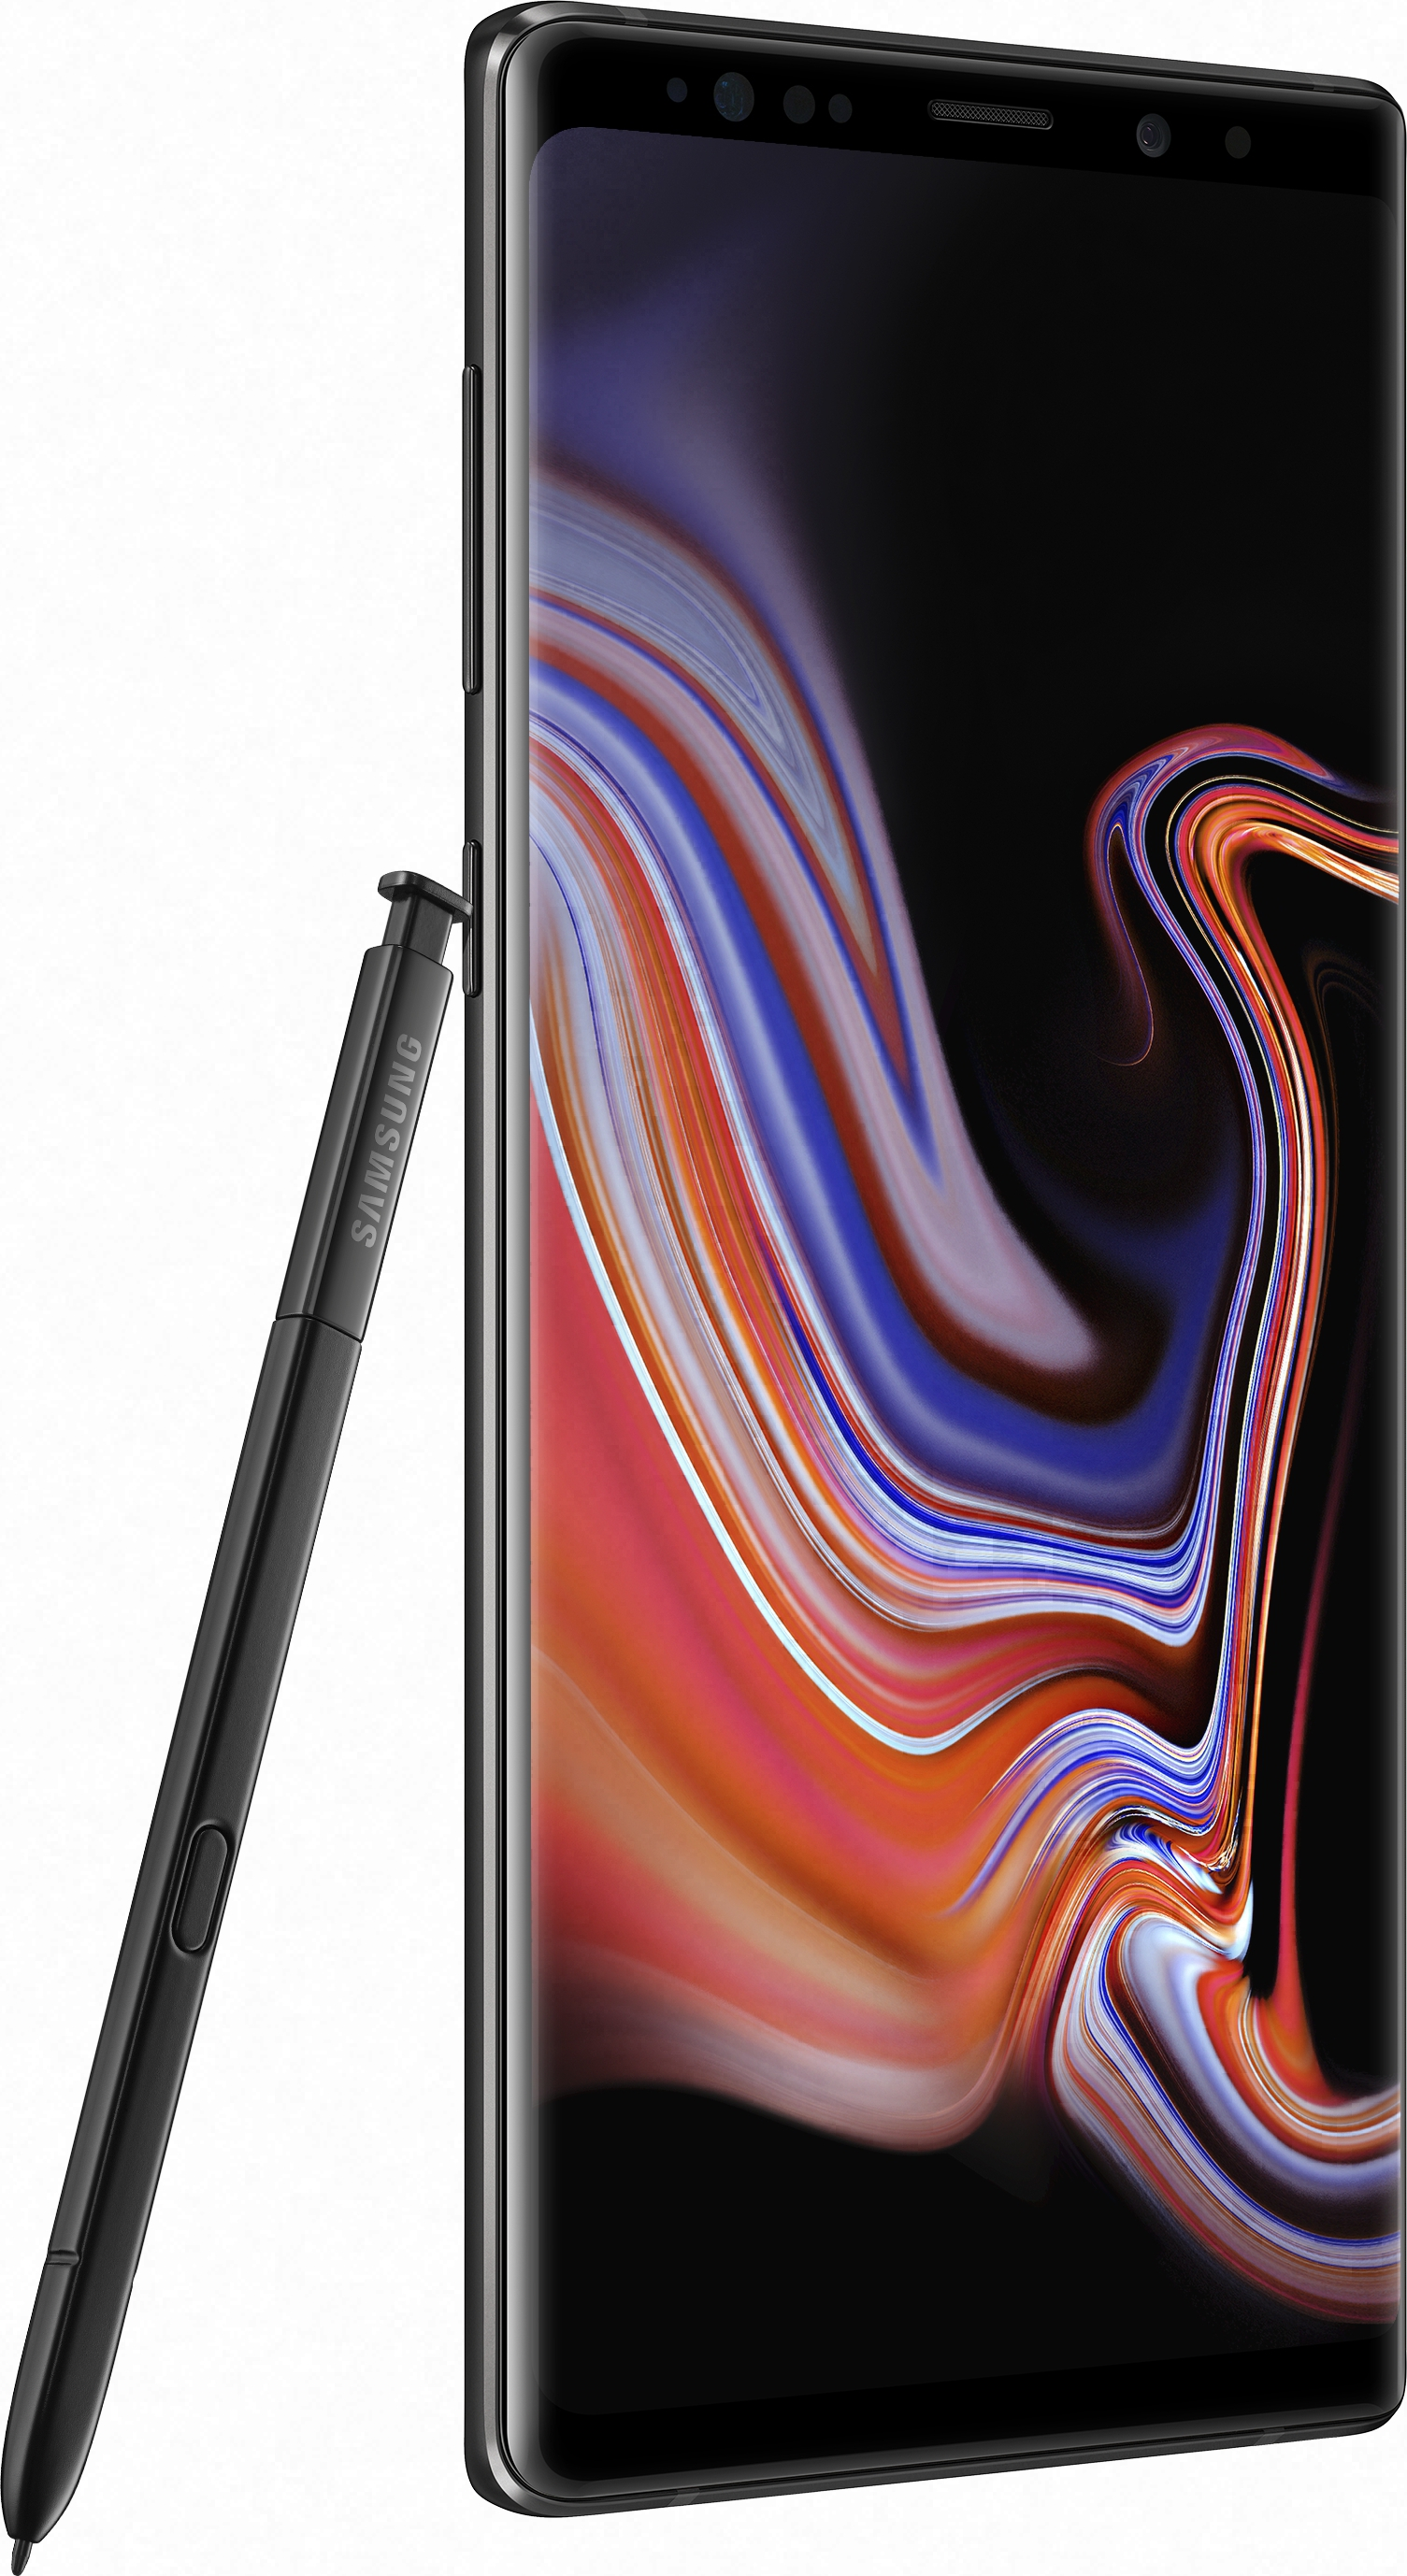 test samsung galaxy note 9 le plus puissant des galaxy note fiche technique prix et date de. Black Bedroom Furniture Sets. Home Design Ideas